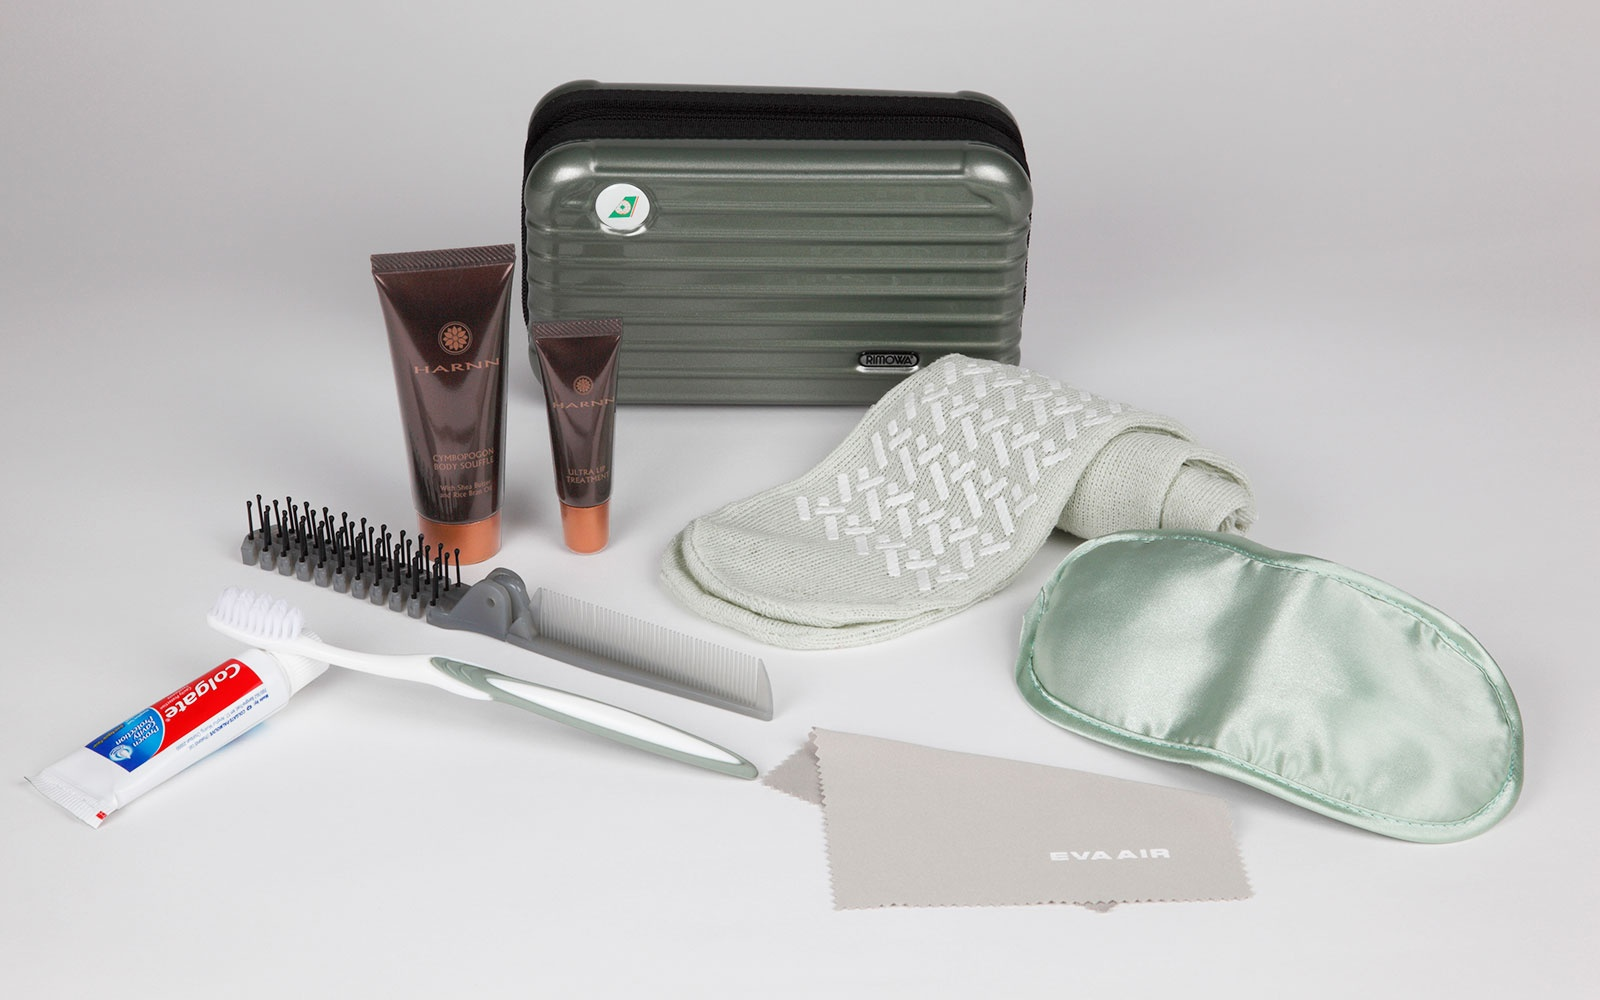 EVA Air: Rimowa Amenity Kits in Royal Laurel Business Class